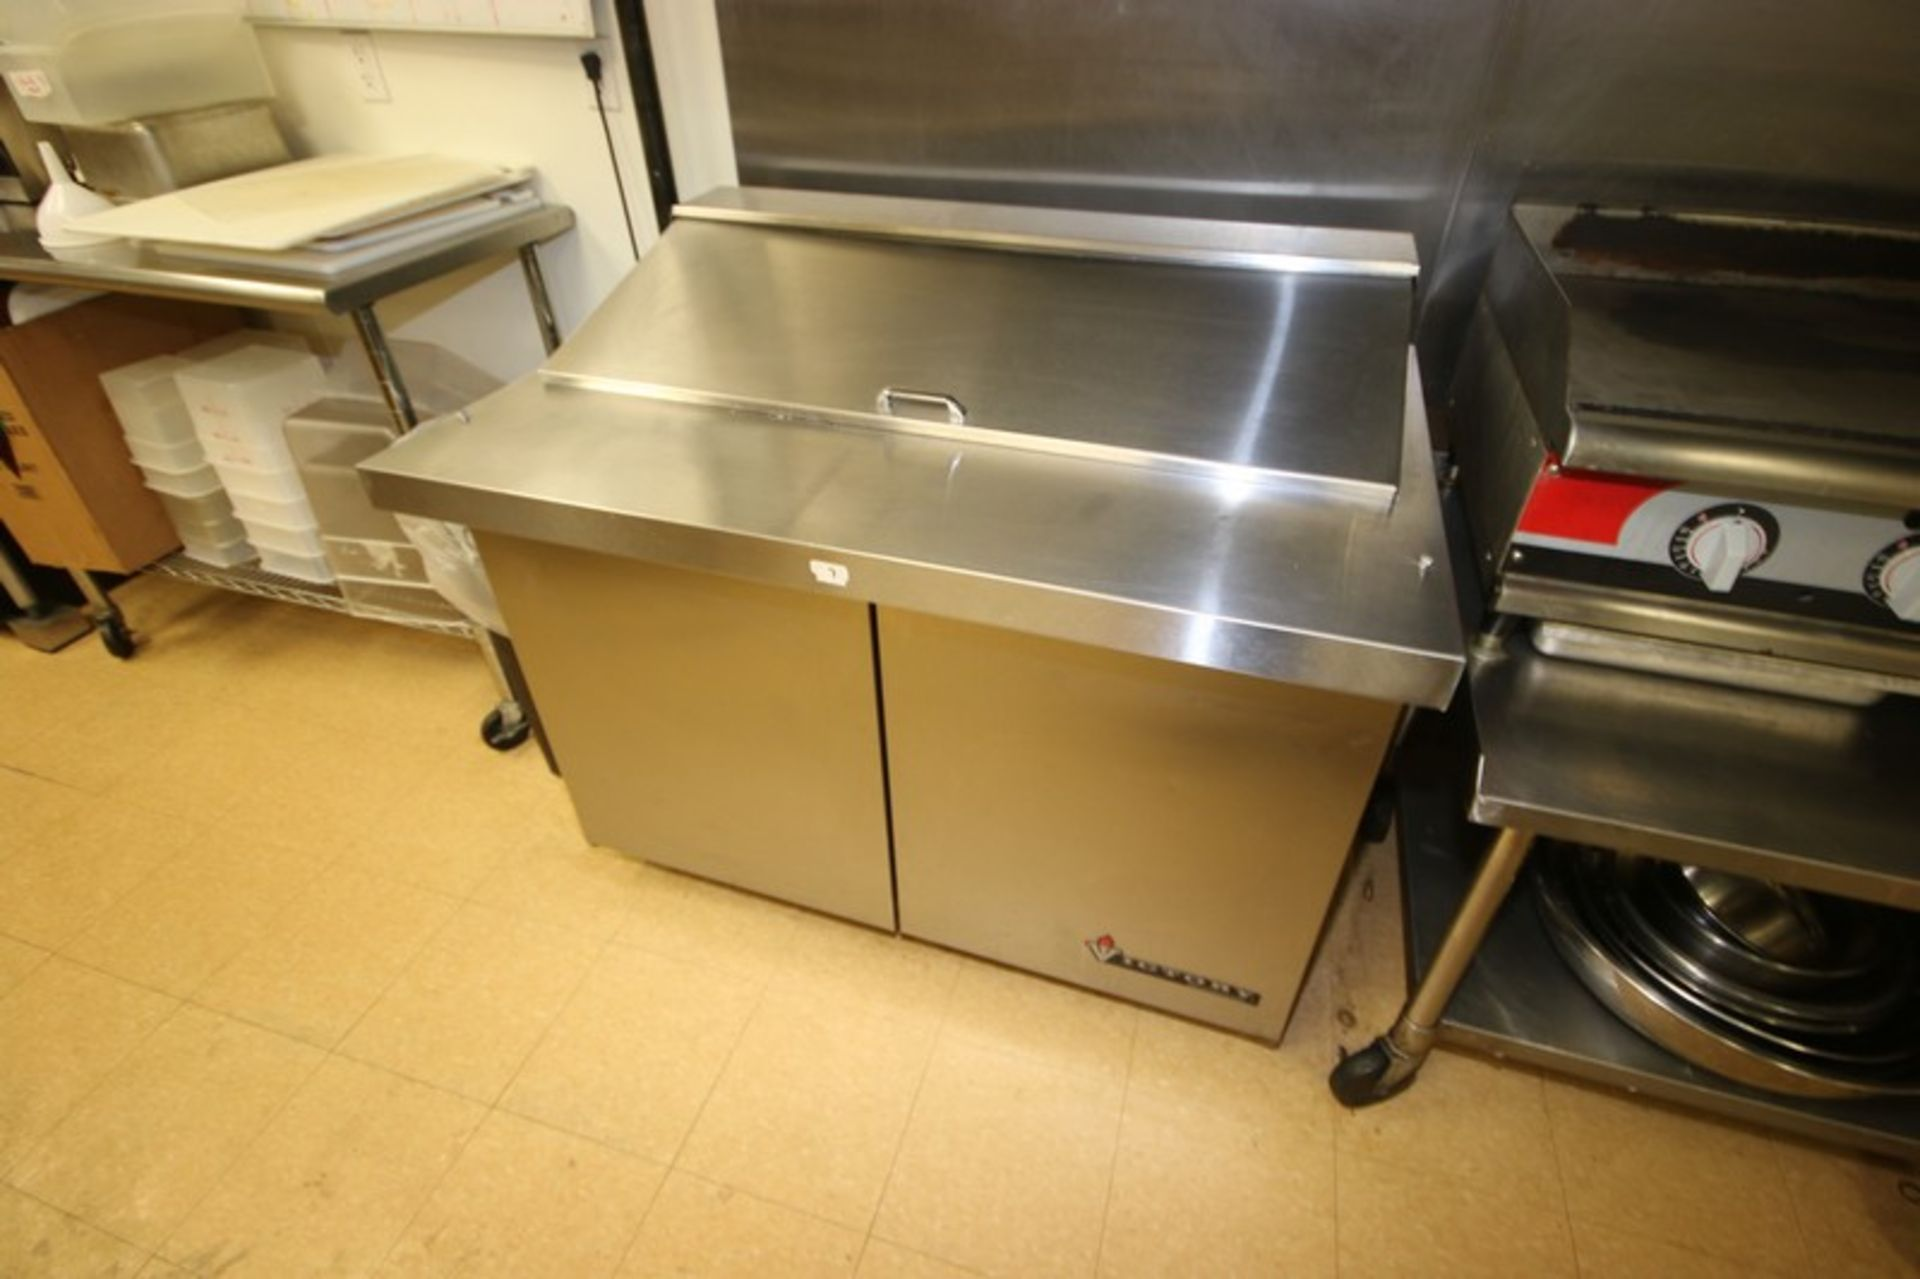 Victory S/S Refrigerated Counter, with 2-Door Bottom Refrigerated Compartment, with S/S Fold Up Door - Image 4 of 4